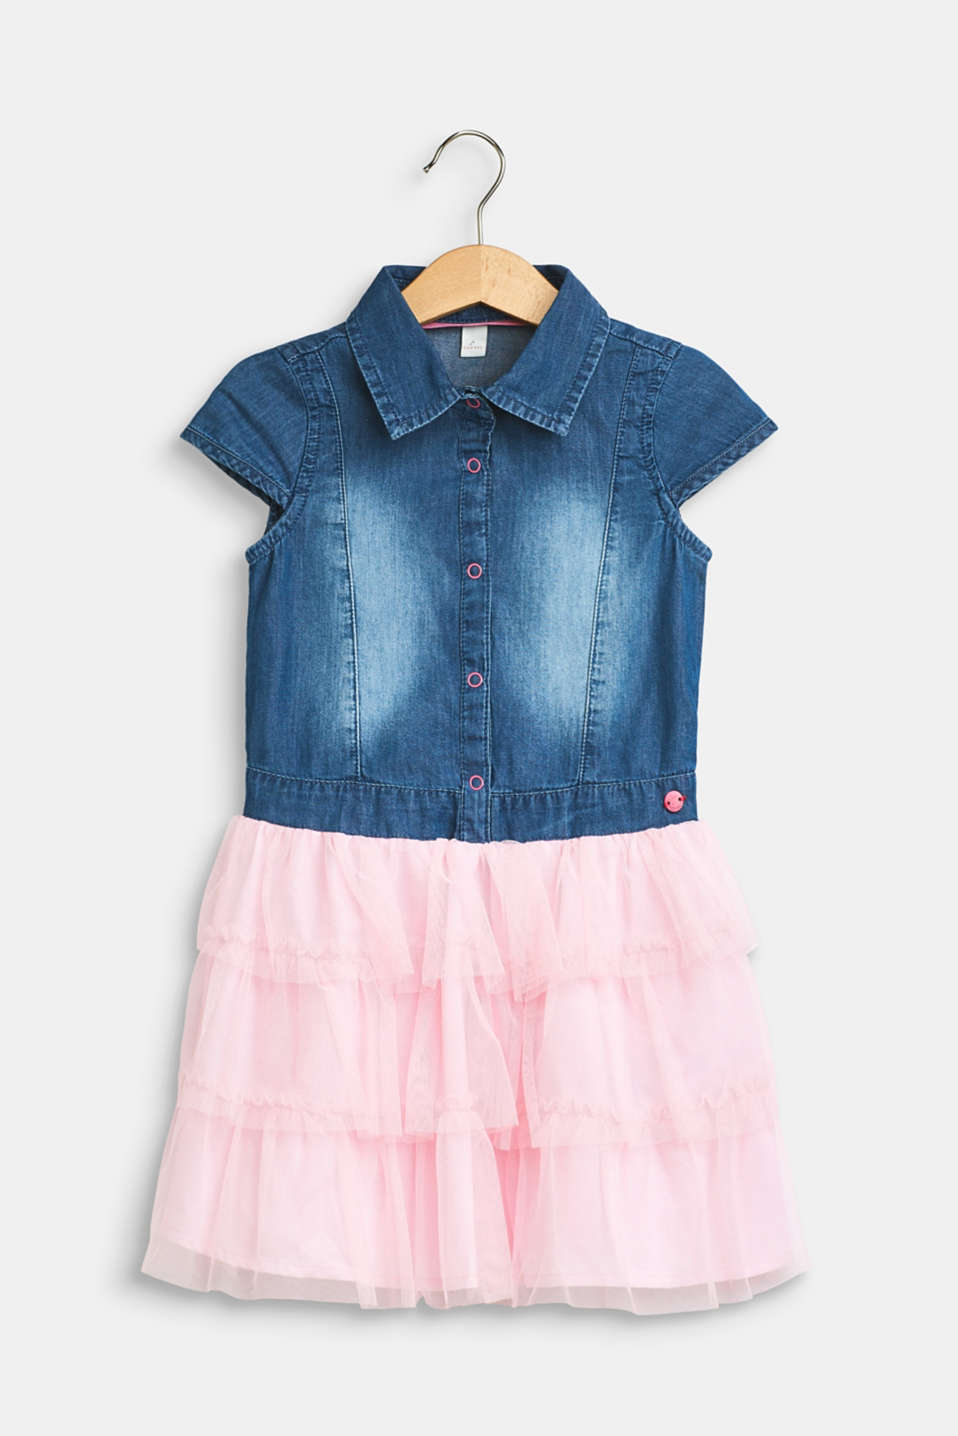 Esprit - Dress with a denim top and tulle skirt